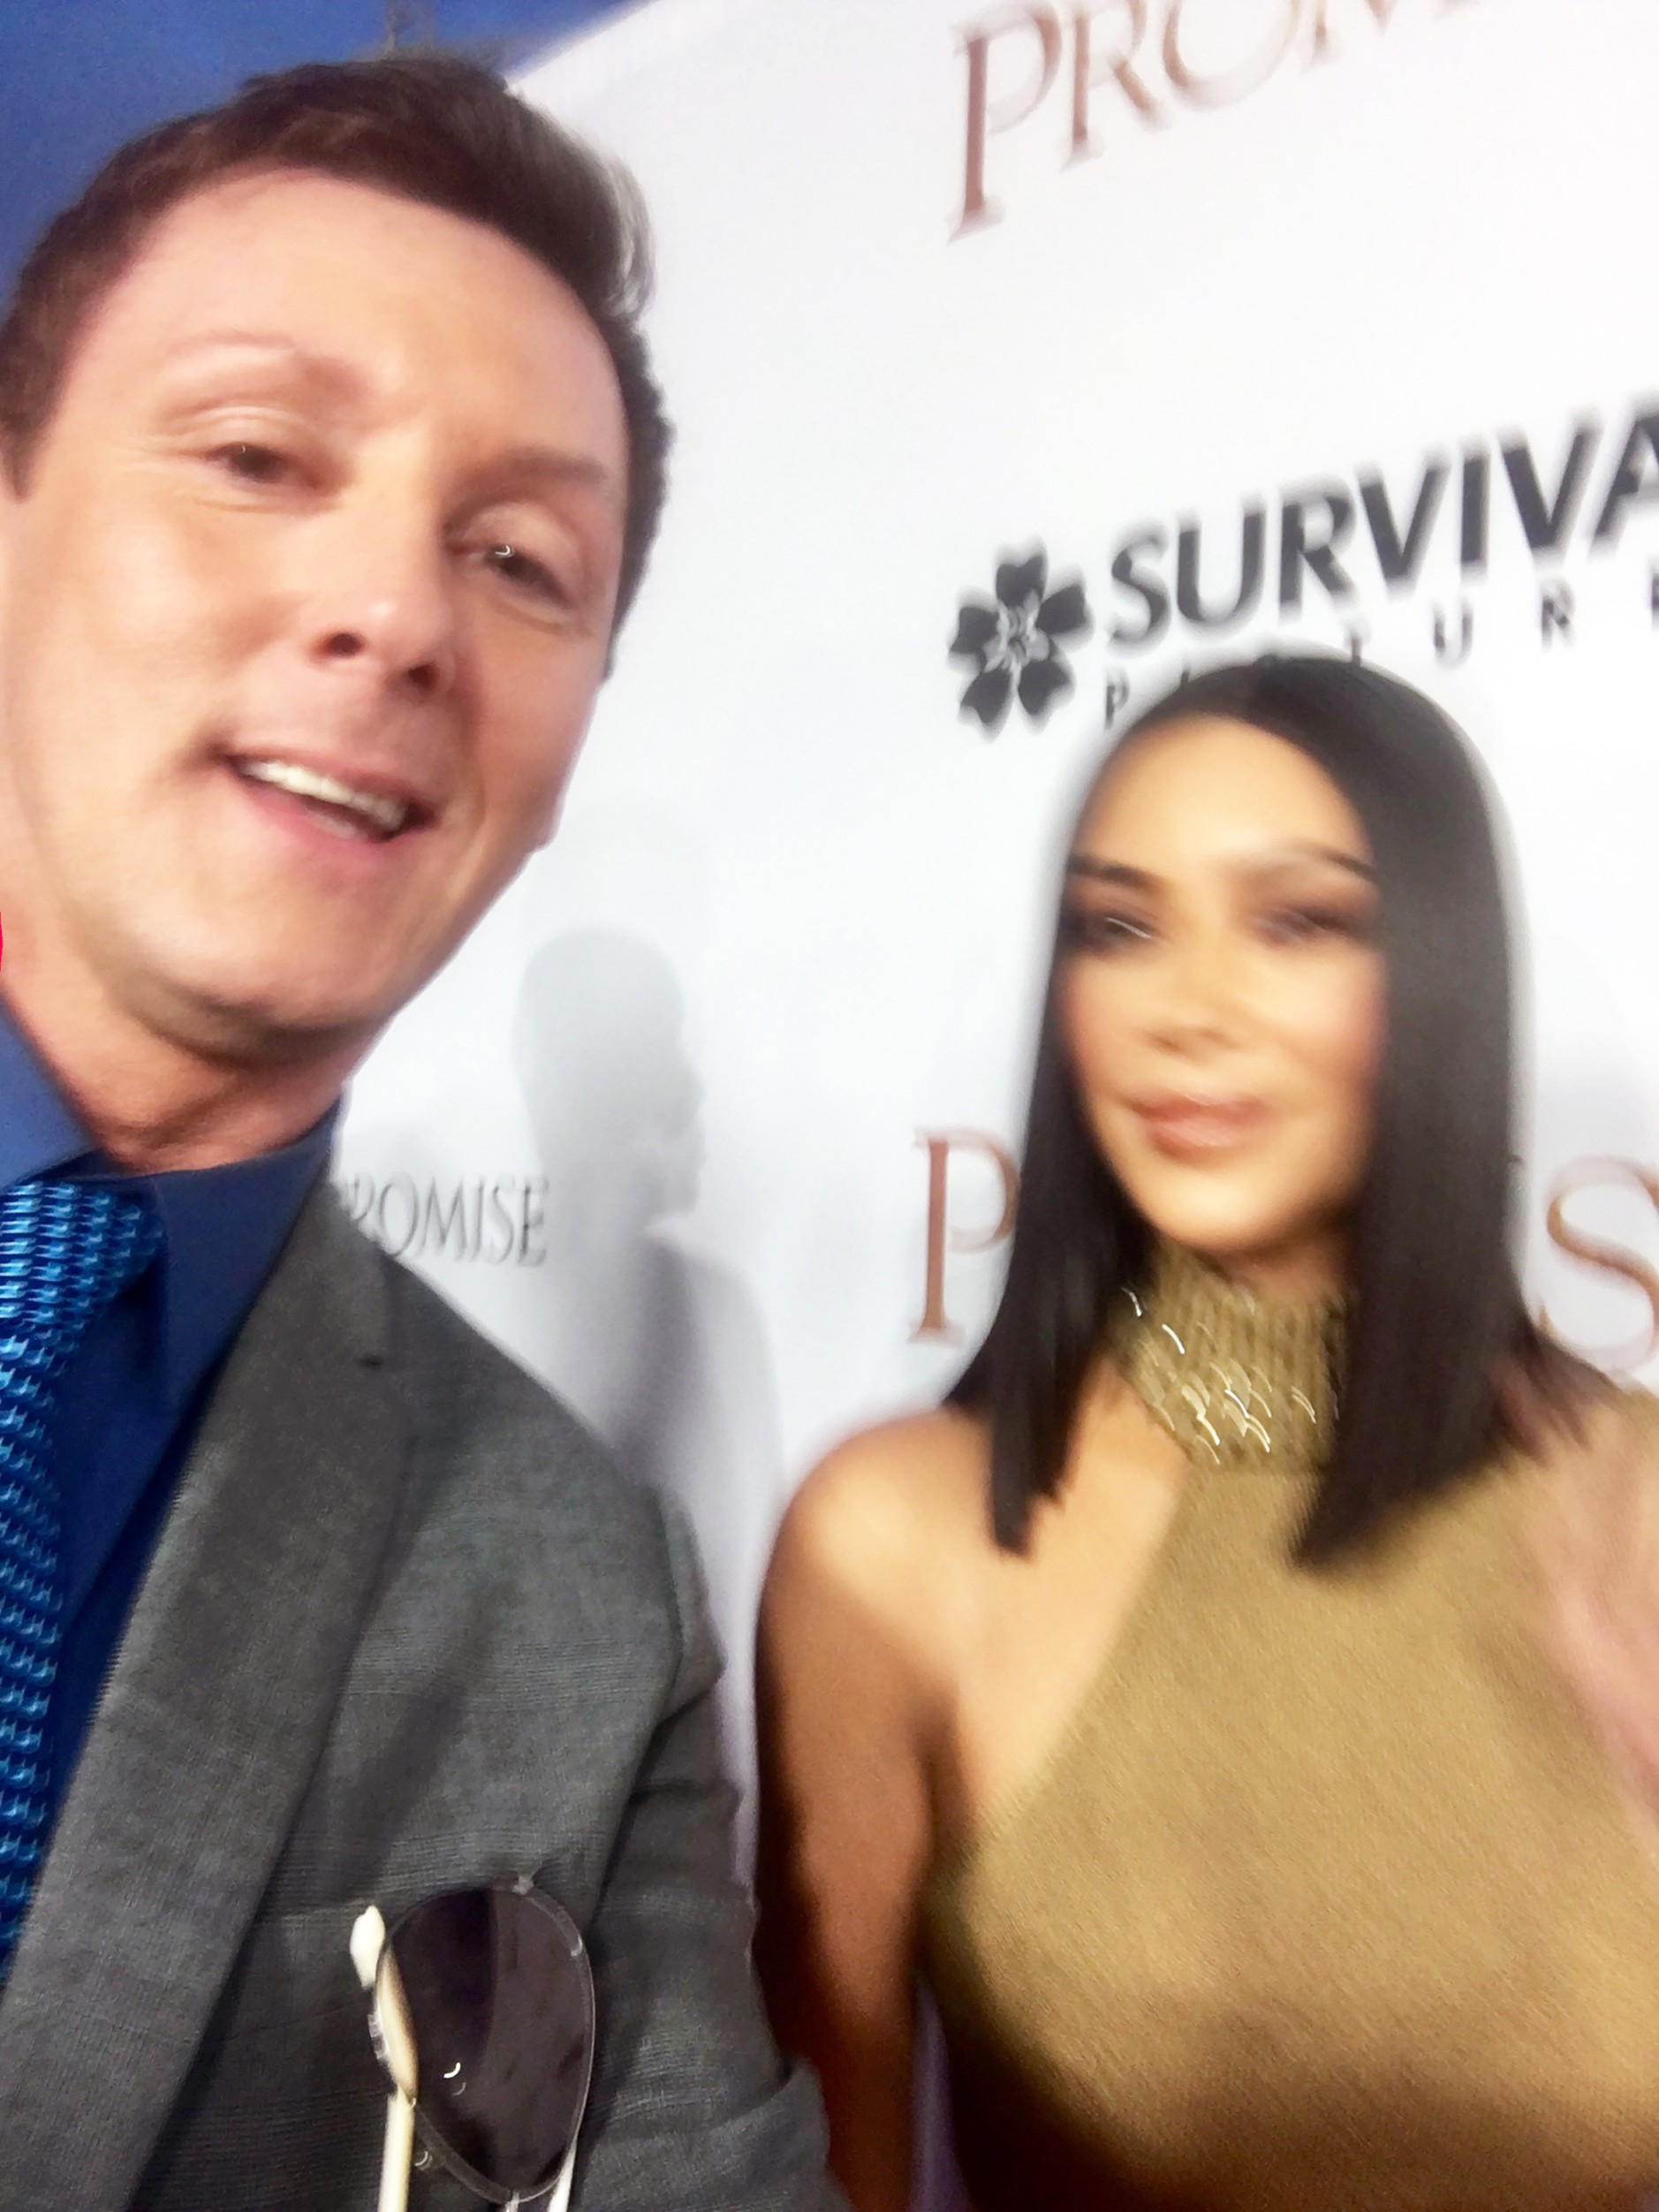 Kim laughed off Sean's first attempt at taking a selfie with her